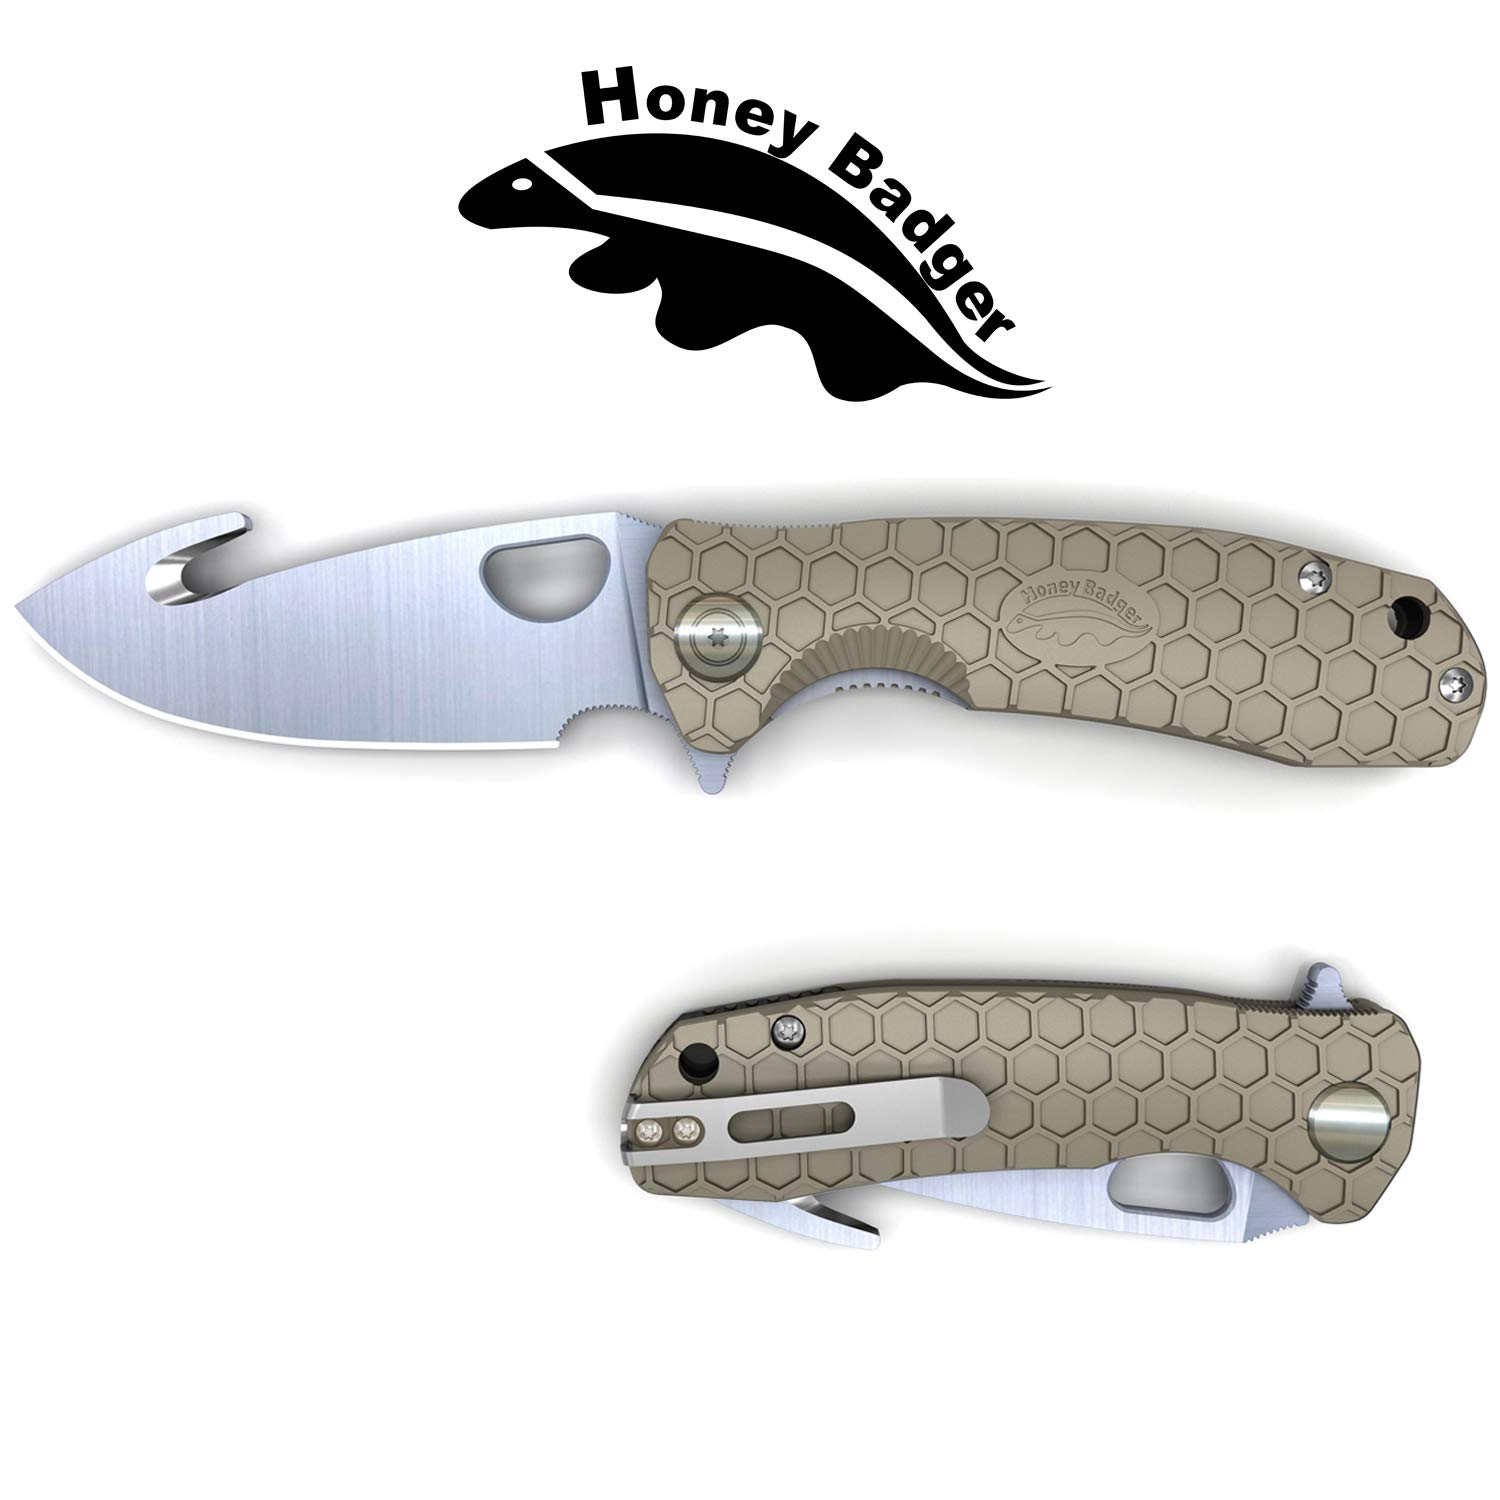 Western Active Honey Badger Flipper Knife Claw and Hook Model Serrated or Smooth Blade (Hook Large Tan) by Western Active